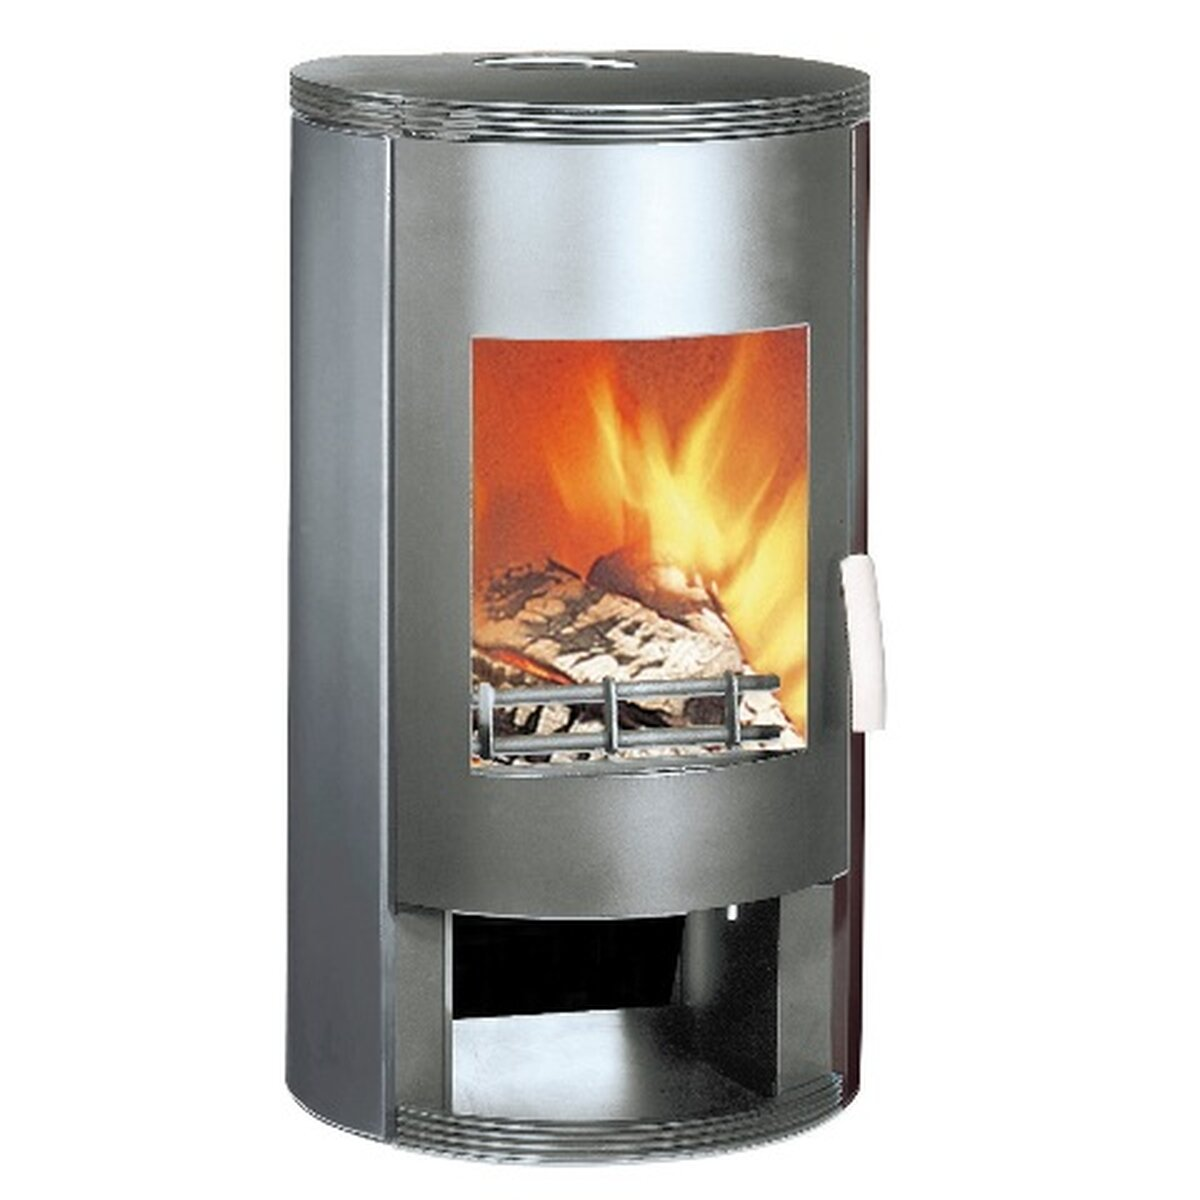 Kaminofen Wamsler Metropolitan Test Wamsler Stoves Brain City